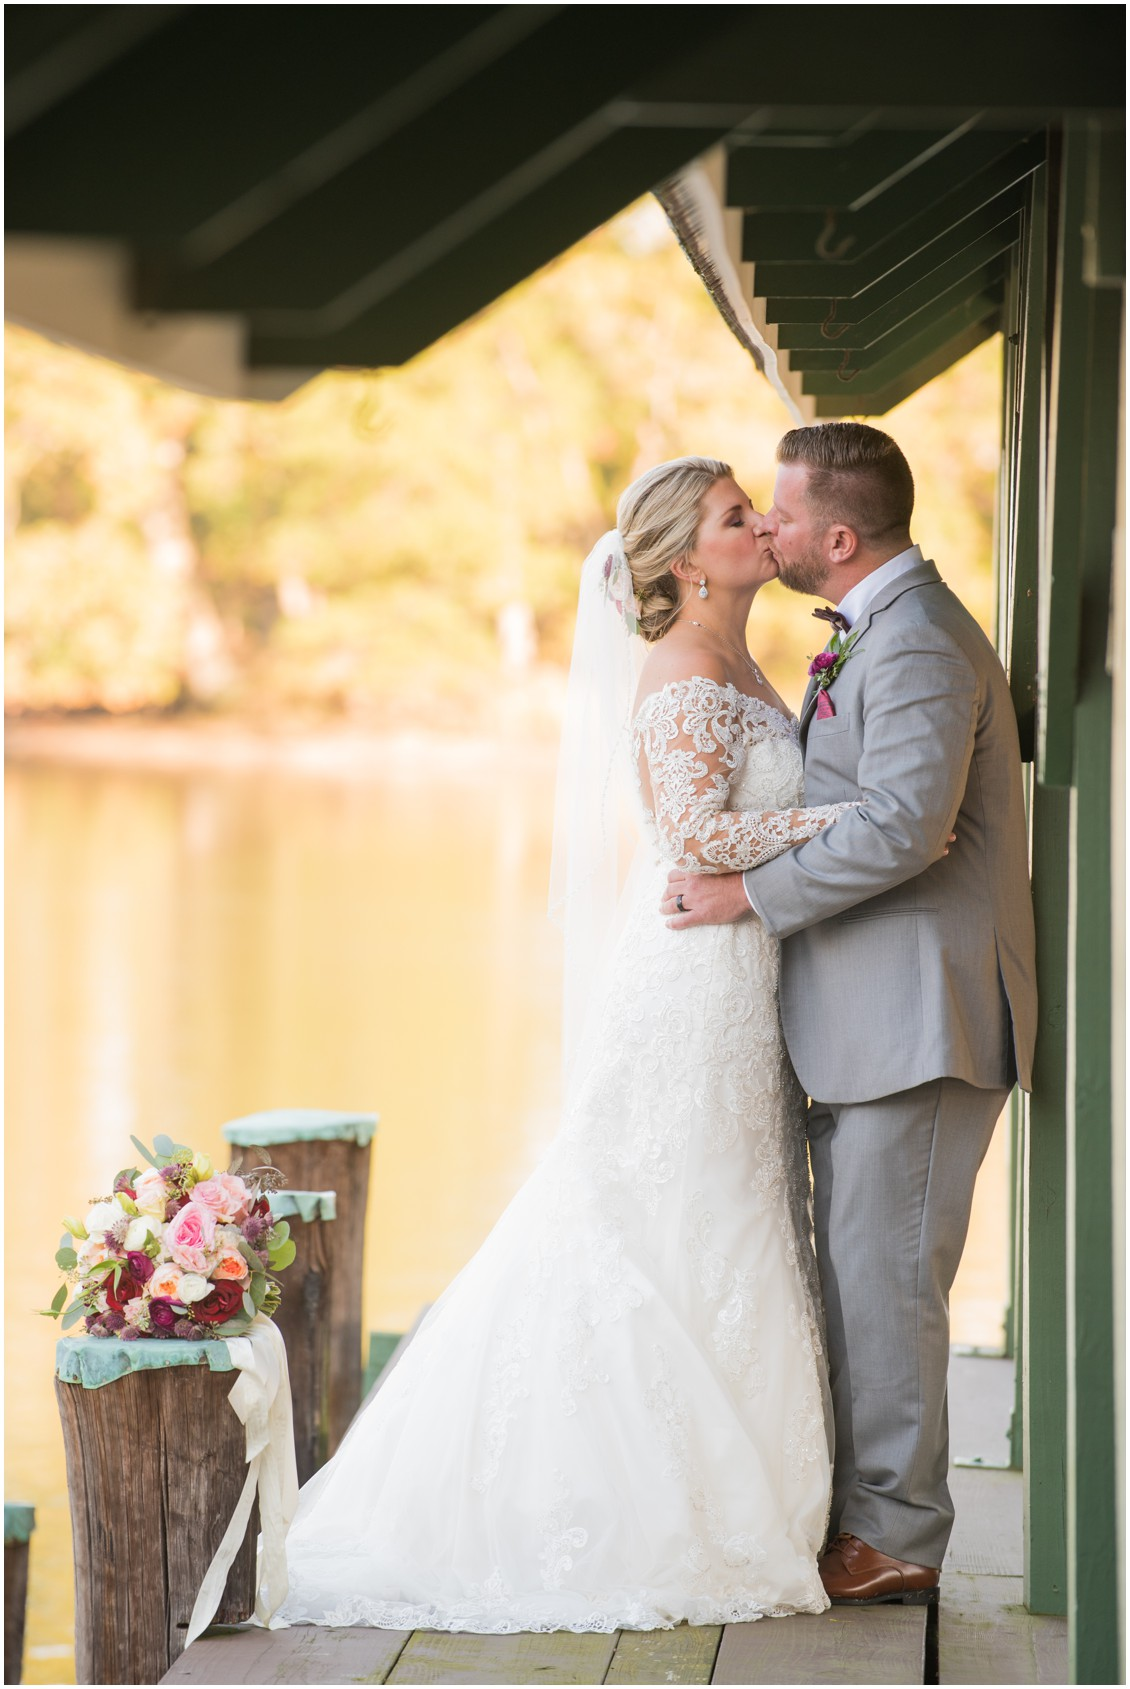 Bride and groom golden hour portrait kissing by the water | My Eastern Shore Wedding | The Oaks Waterfront Inn | Monteray Farms